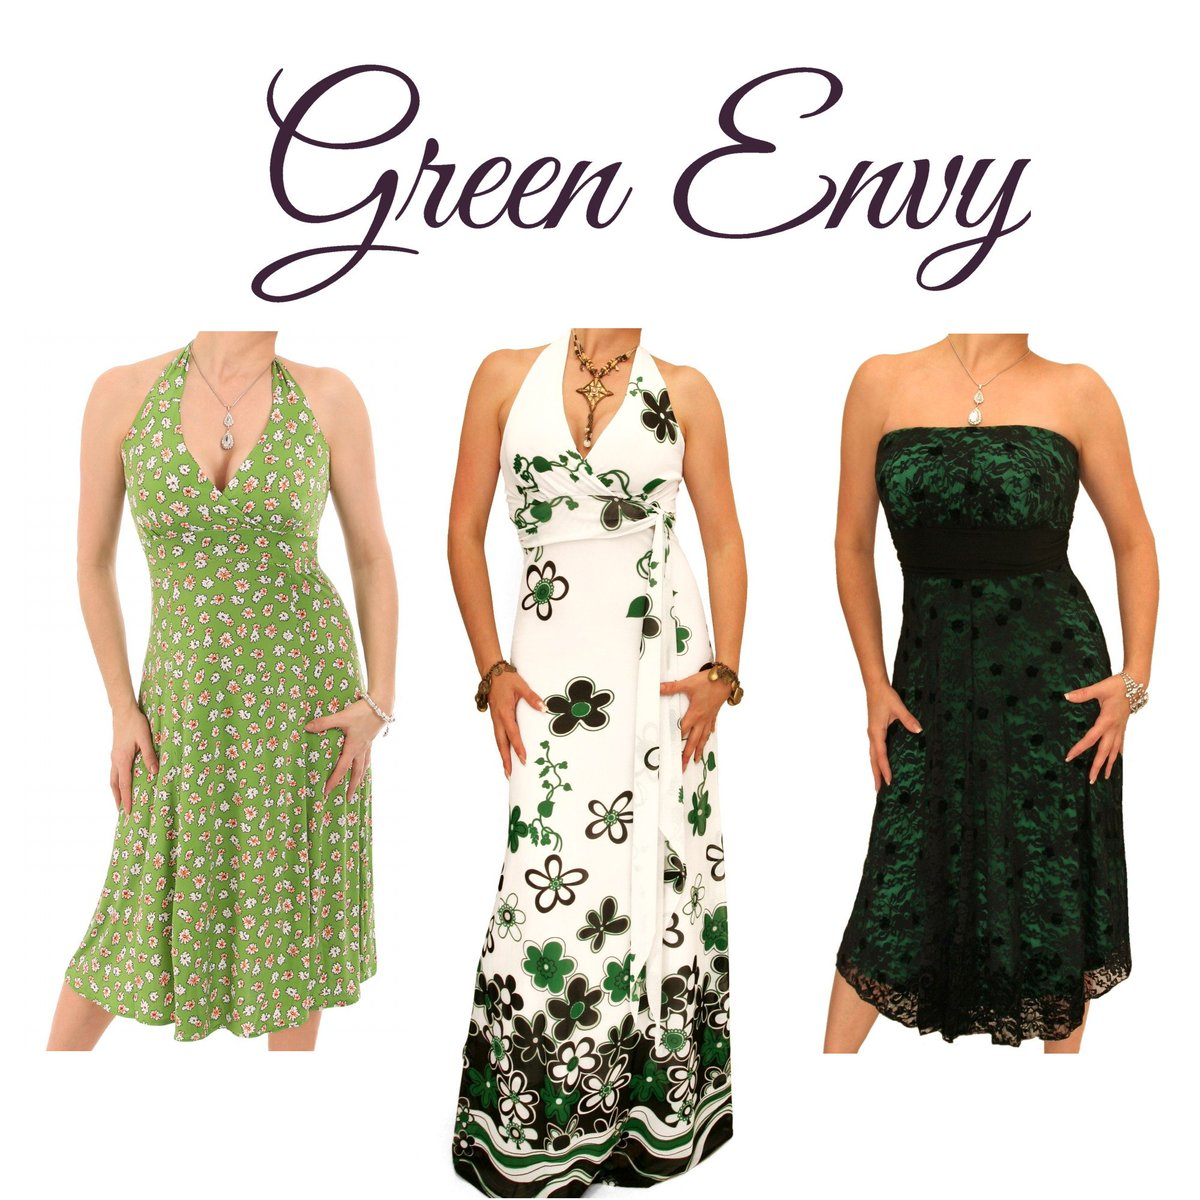 GREEN ENVY! Go all out in green this summer and be the envy of your friends.  https://www. justblue.com/search.php?t=g reen &nbsp; …  #greem #envy<br>http://pic.twitter.com/0Qwj3HPOxo